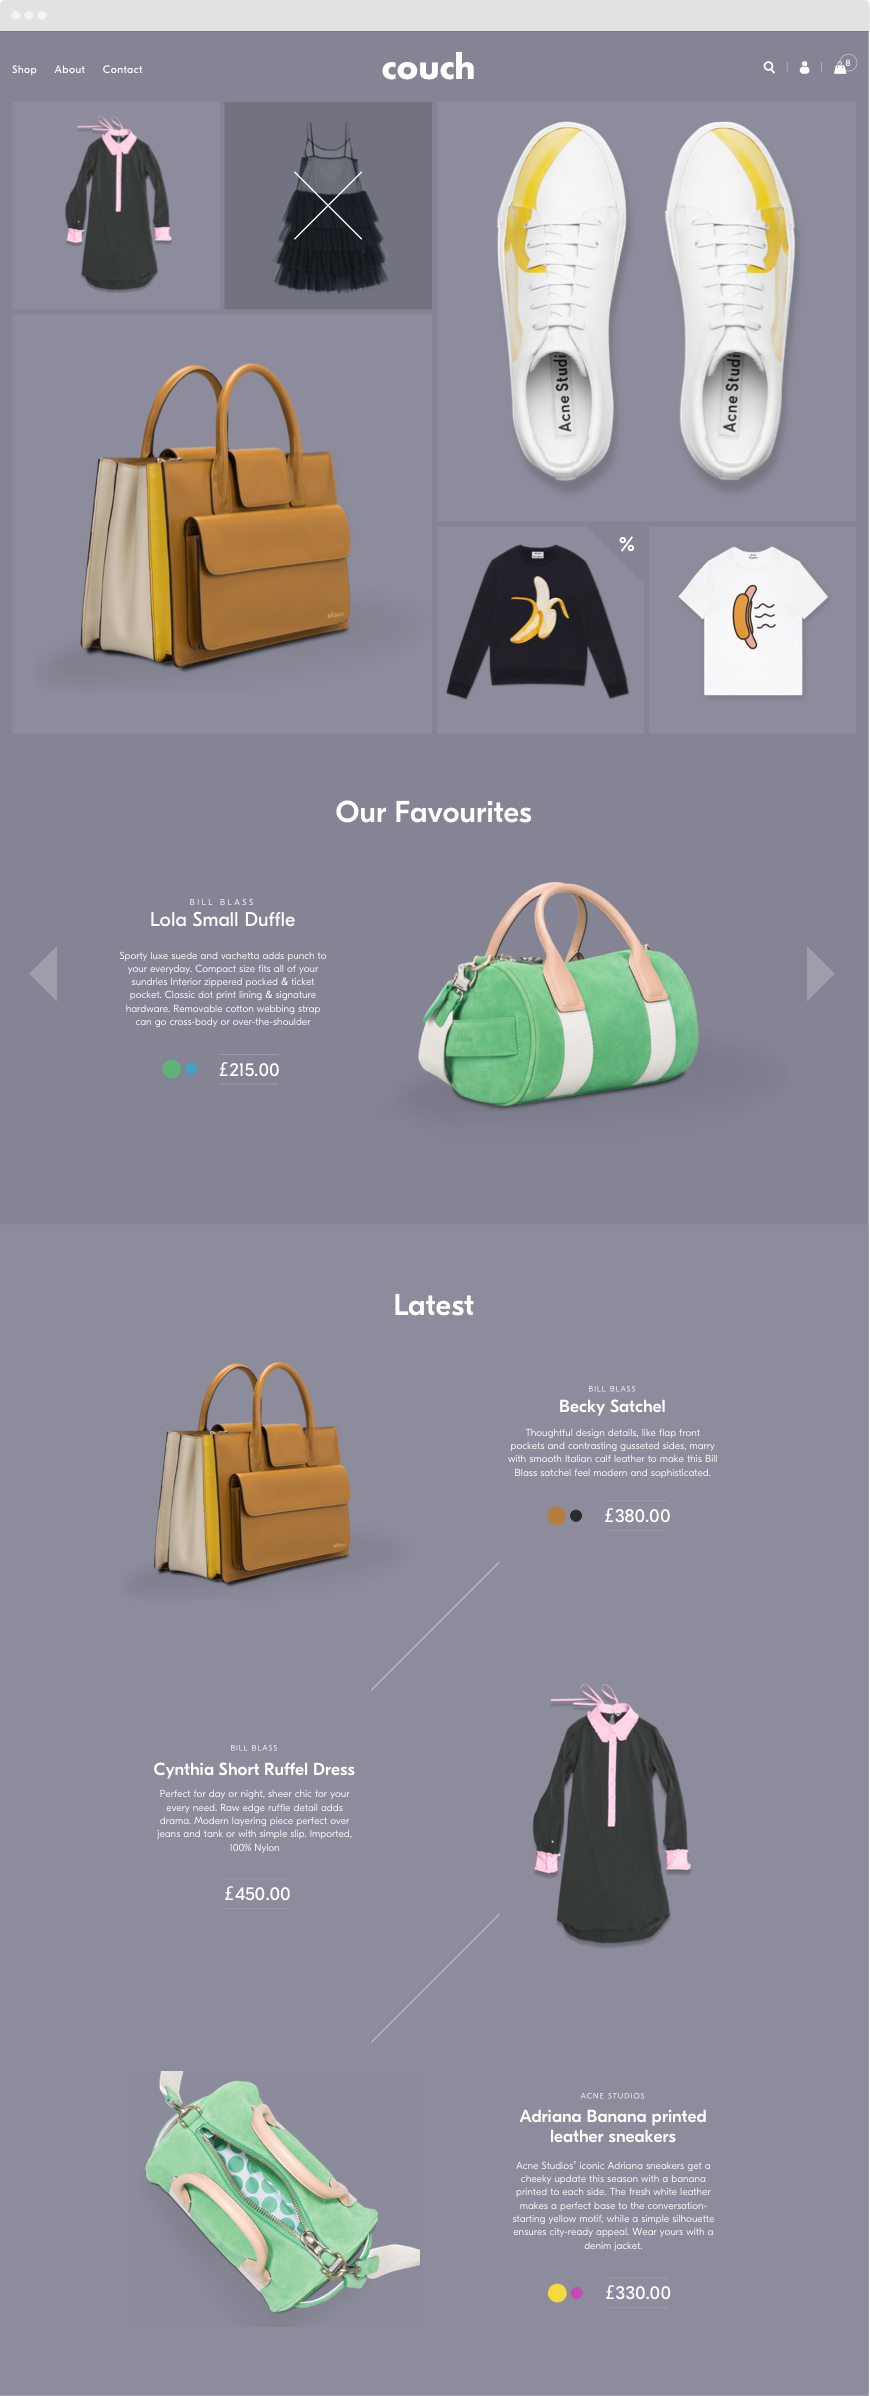 Shopify Theme Design - Fashion ecommerce site homepage